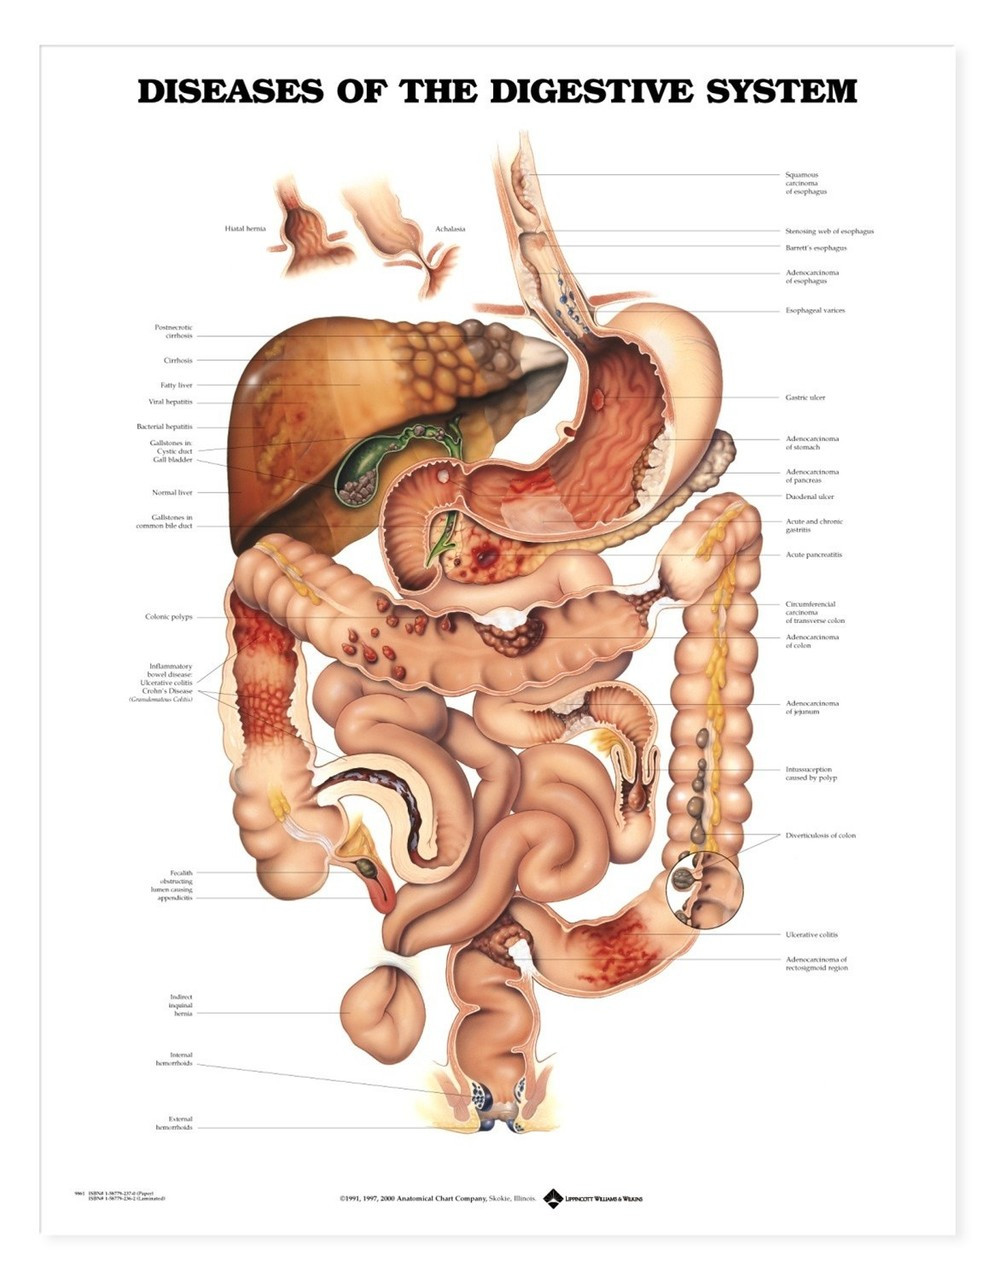 Diseases of the Digestive System Anatomical Chart